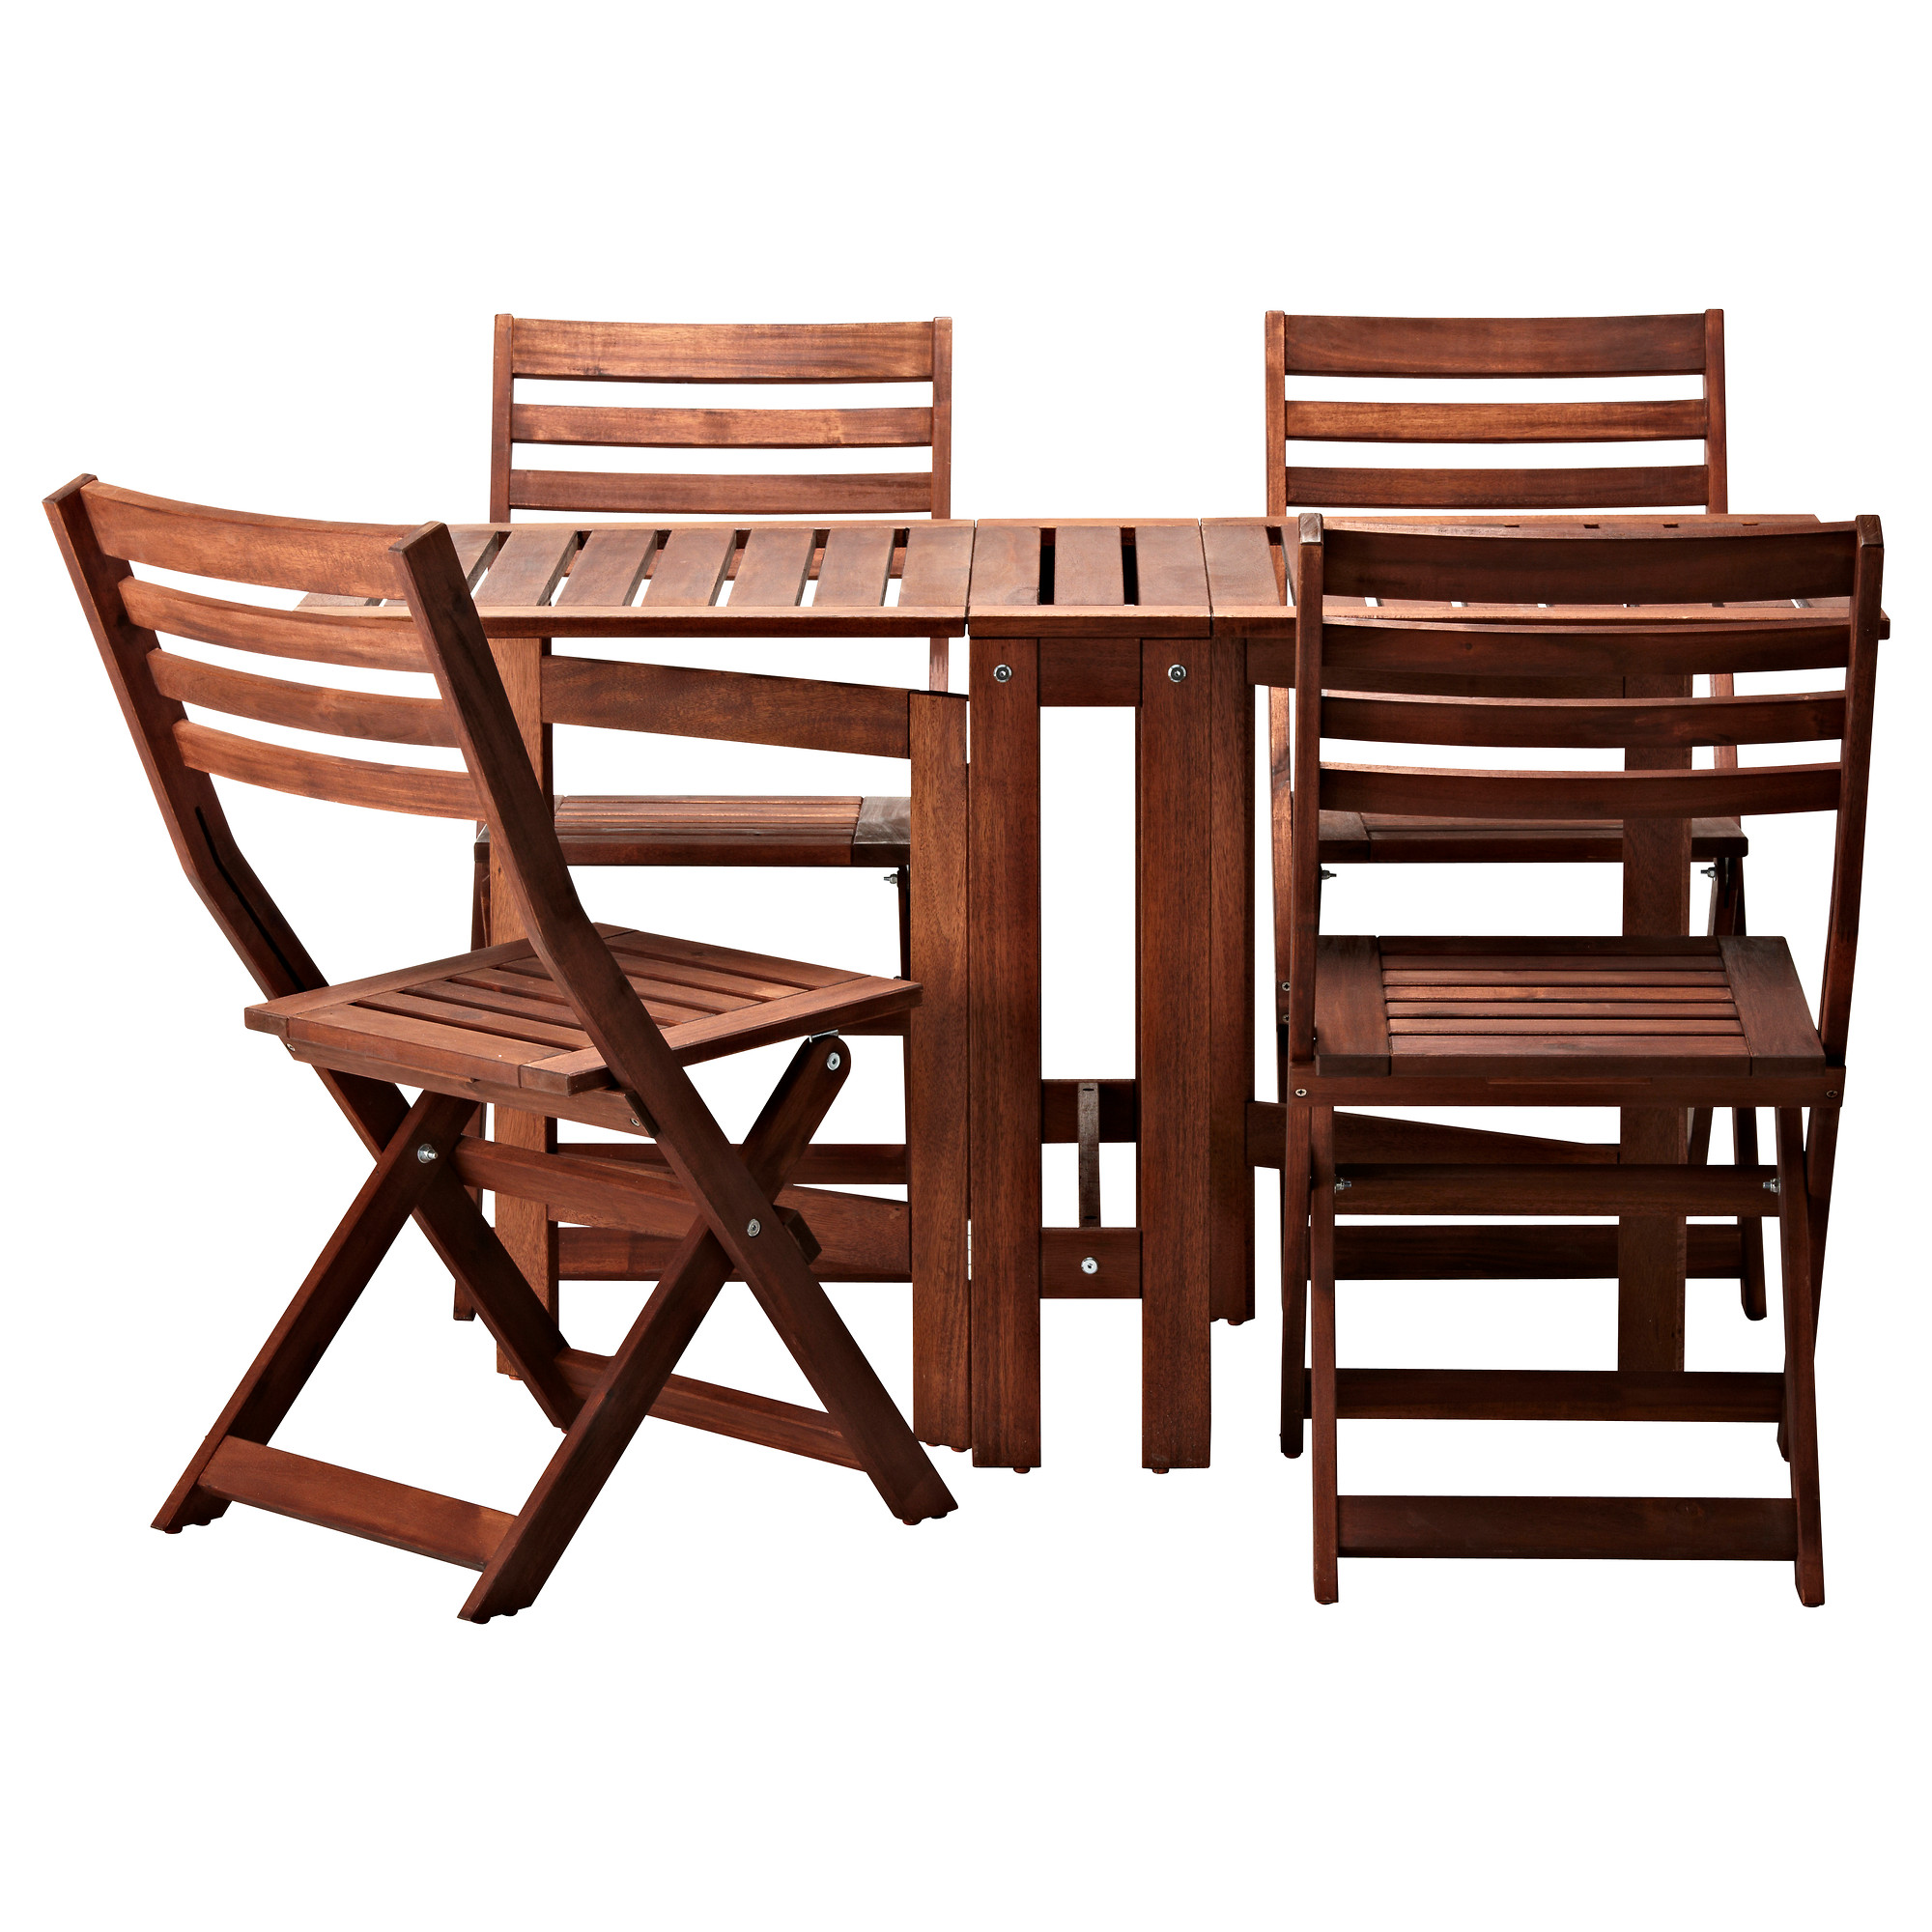 Beautiful ÄPPLARÖ Table and 4 folding chairs, outdoor - IKEA wooden garden table and chairs